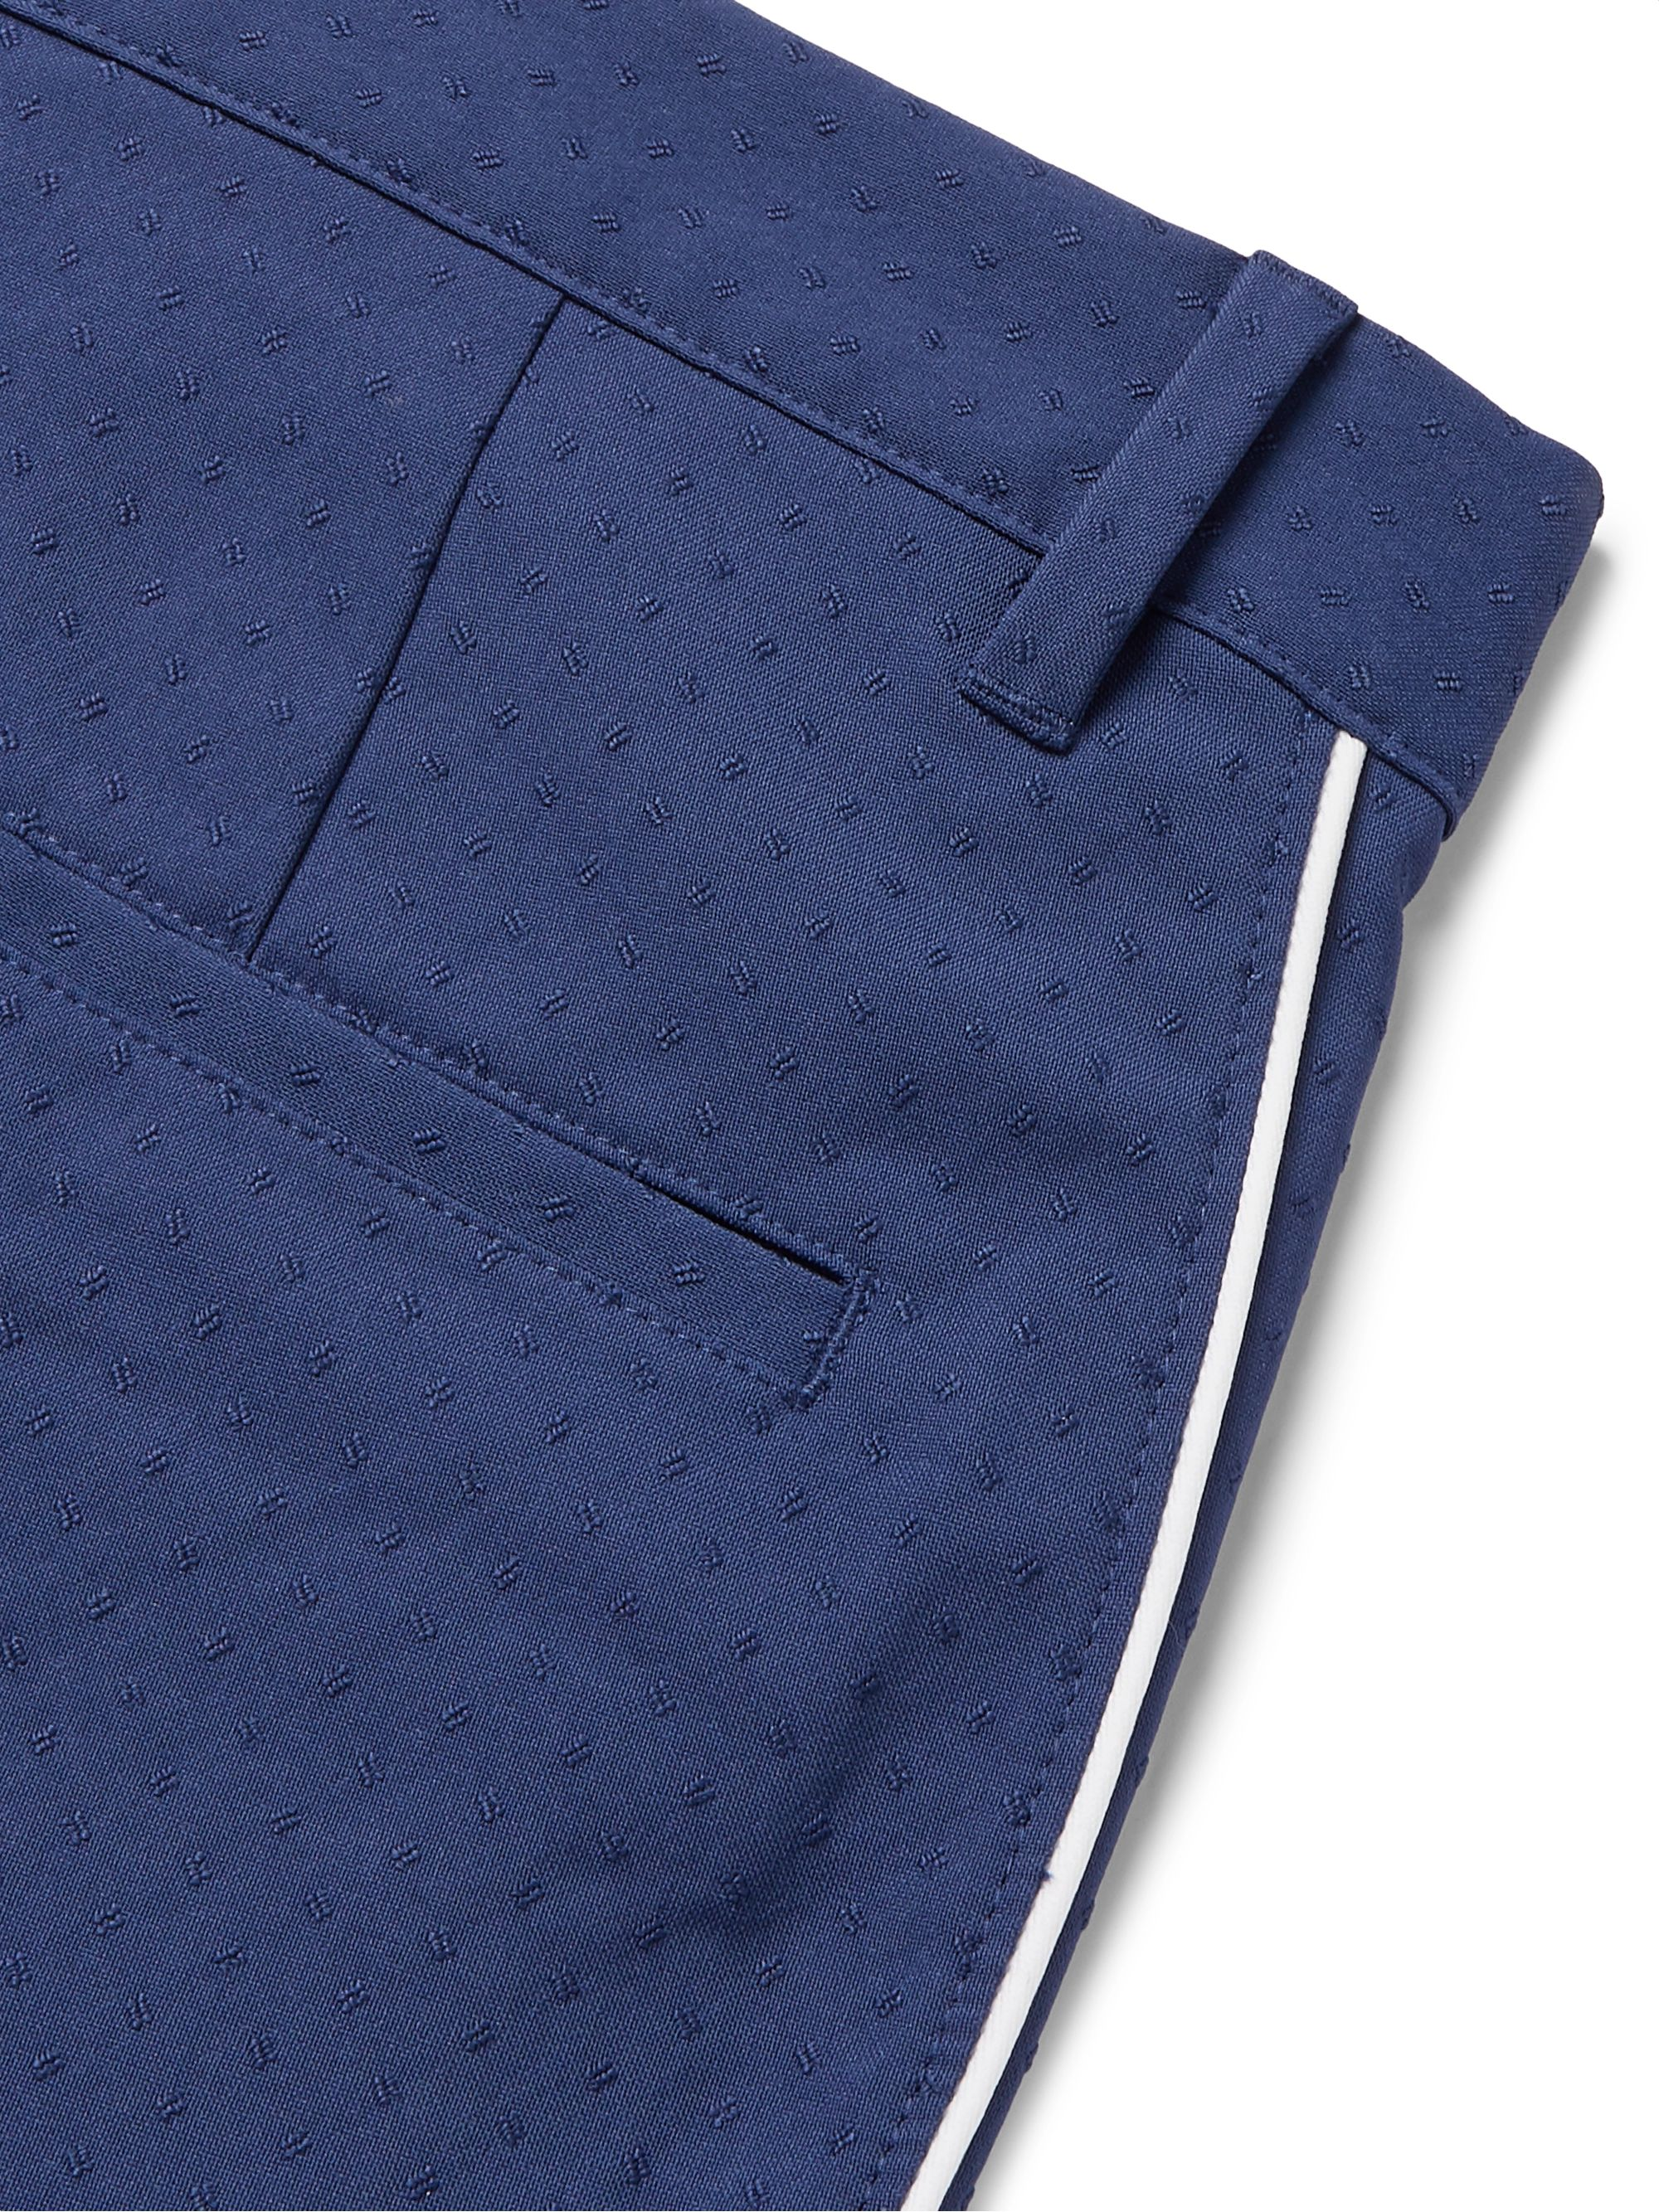 Adidas Golf Canvas-Dobby Golf Shorts